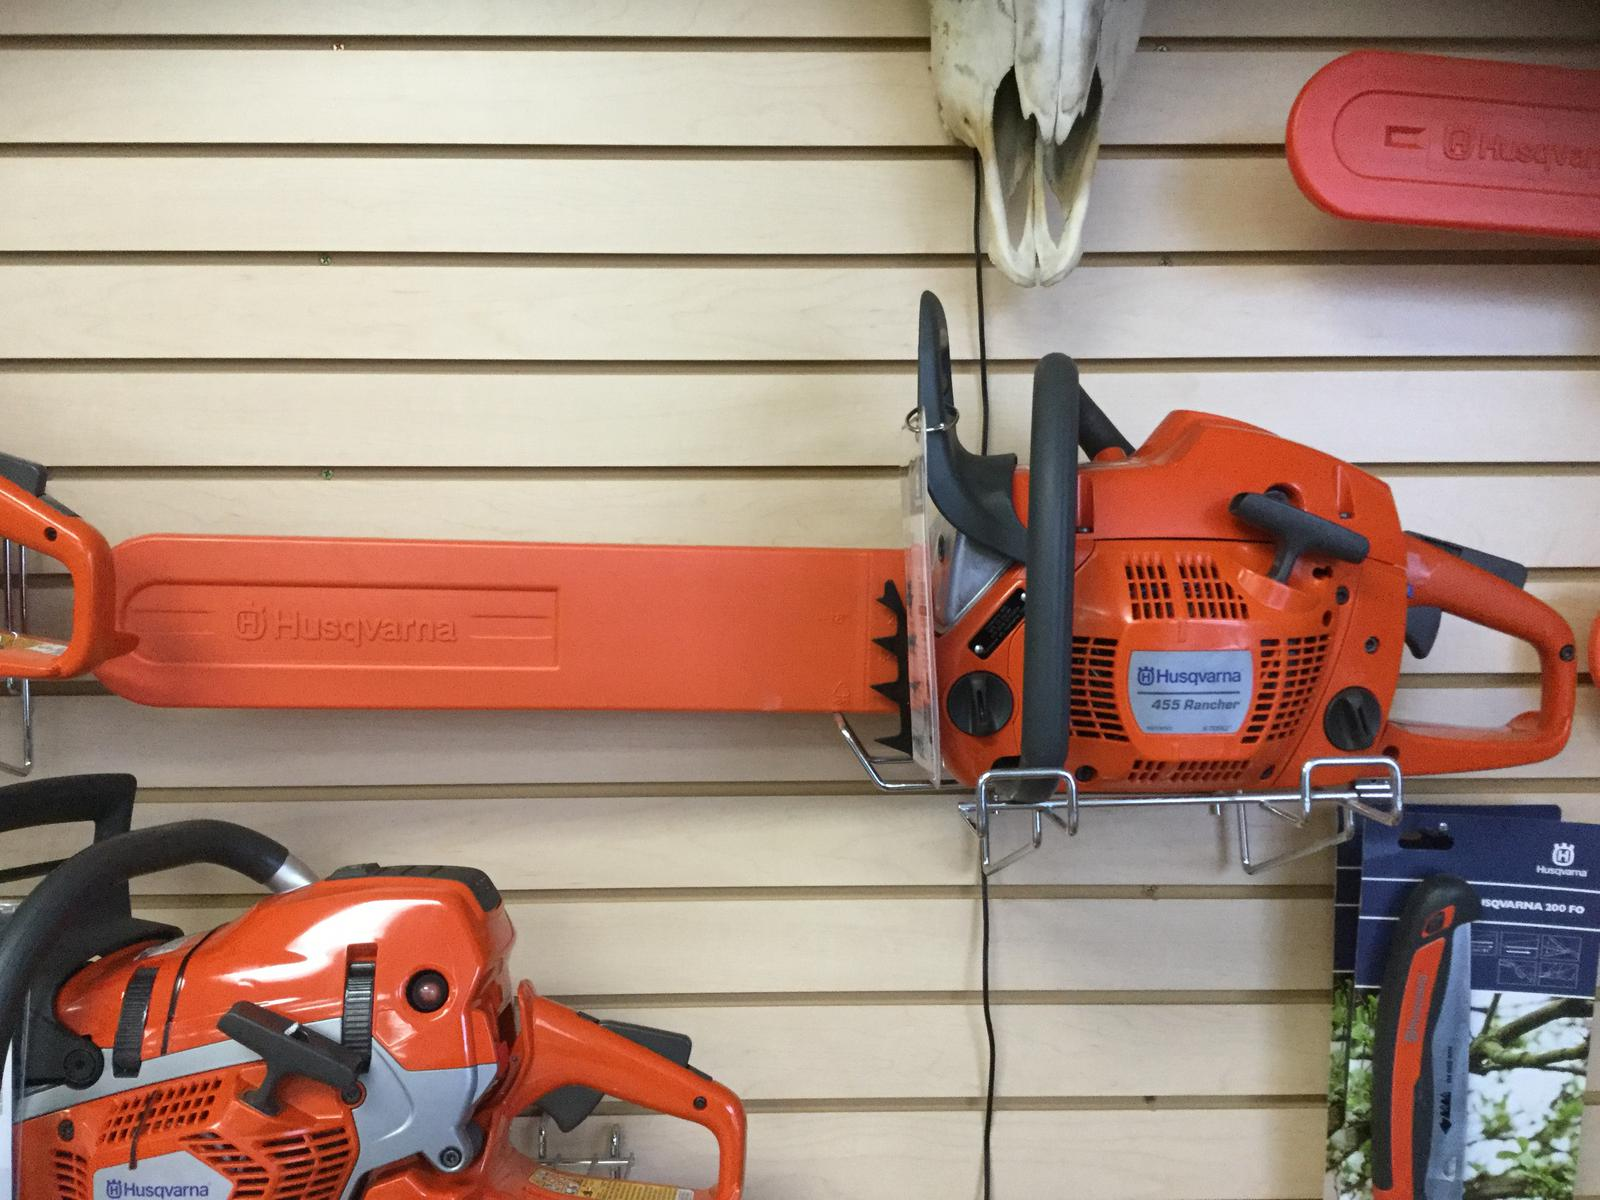 "2017 Husqvarna 455 RANCHER CHAINSAW 20"" BAR for sale in Thompson Falls, MT  